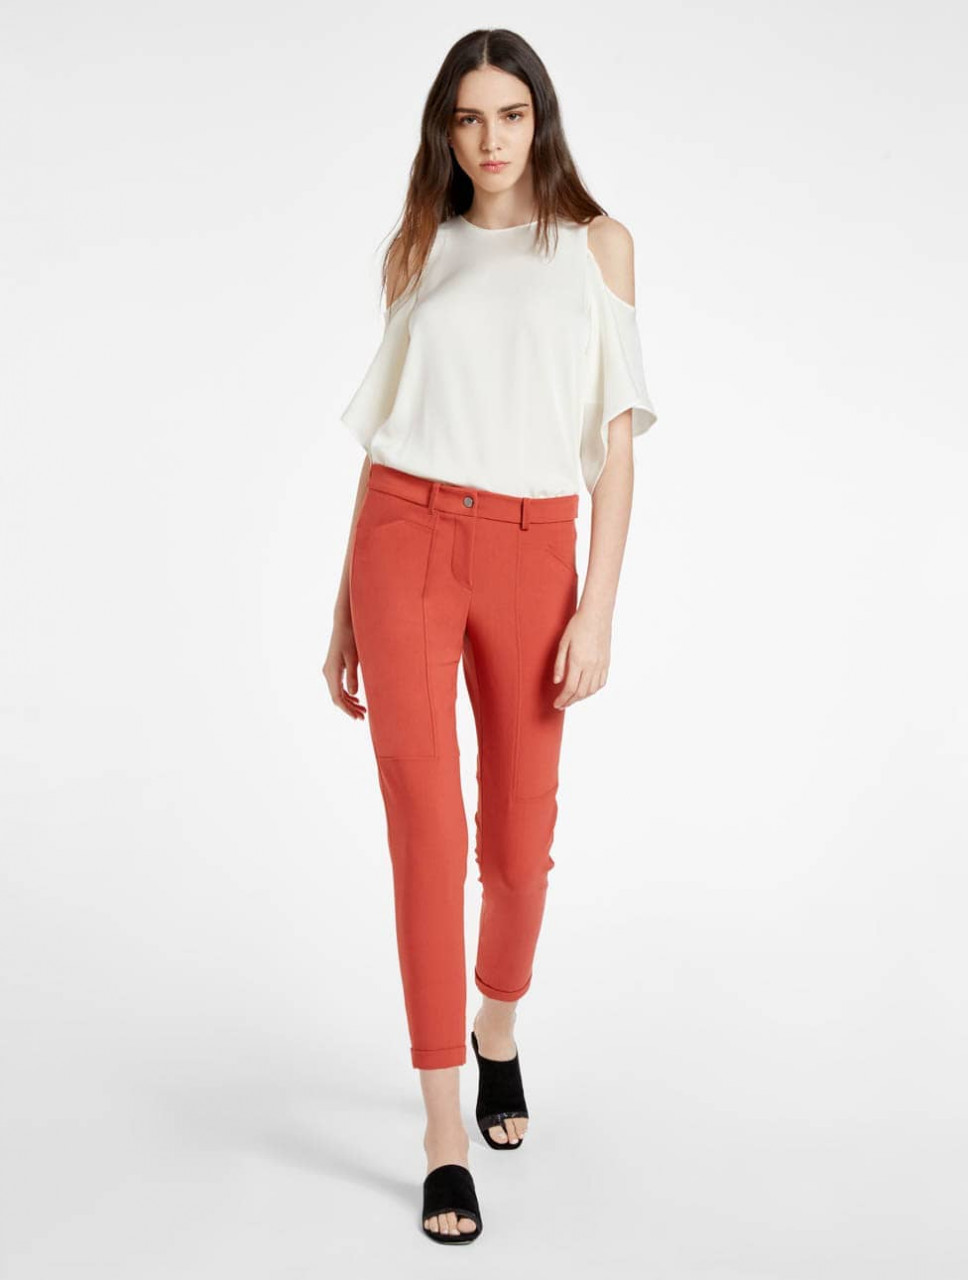 PANTALON SLIM CONICO AL TOBILLO